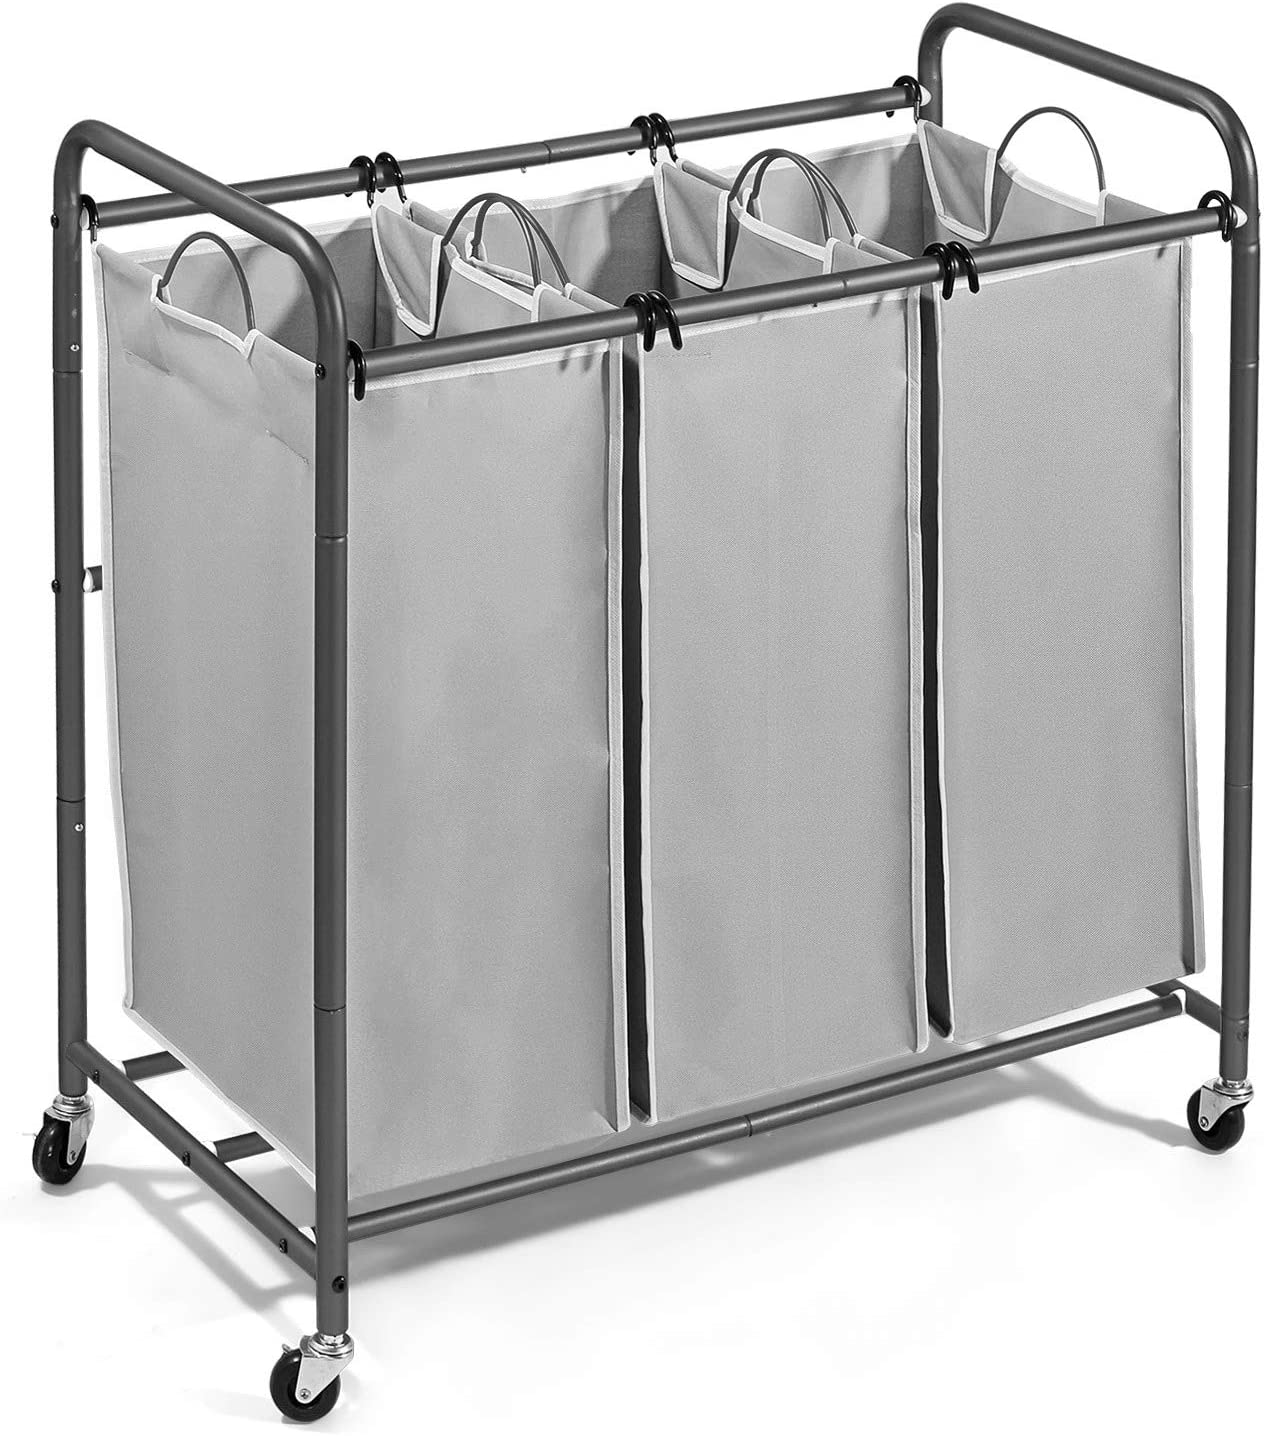 JustRoomy Mobile 3-Bag Heavy-Duty Laundry Hamper Sorter Laundry Organizer Cart Basket with Rolling Lockable Wheels Casters Tall Handles for Household Clothes Storage, Silver Gray